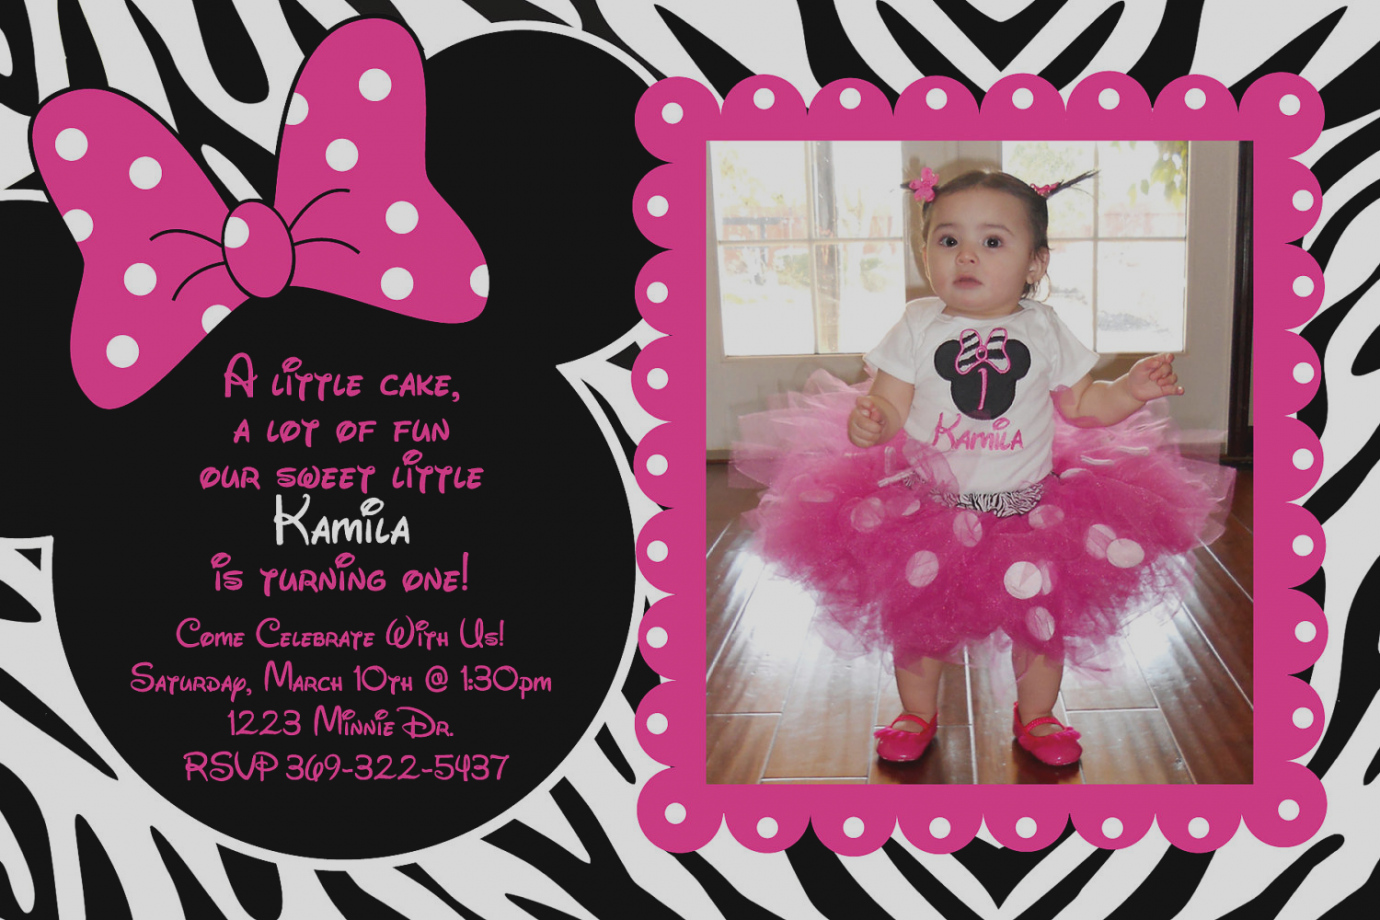 custom photo birthday party invitations ; new-custom-birthday-party-invitations-invites-best-10-minnie-mouse